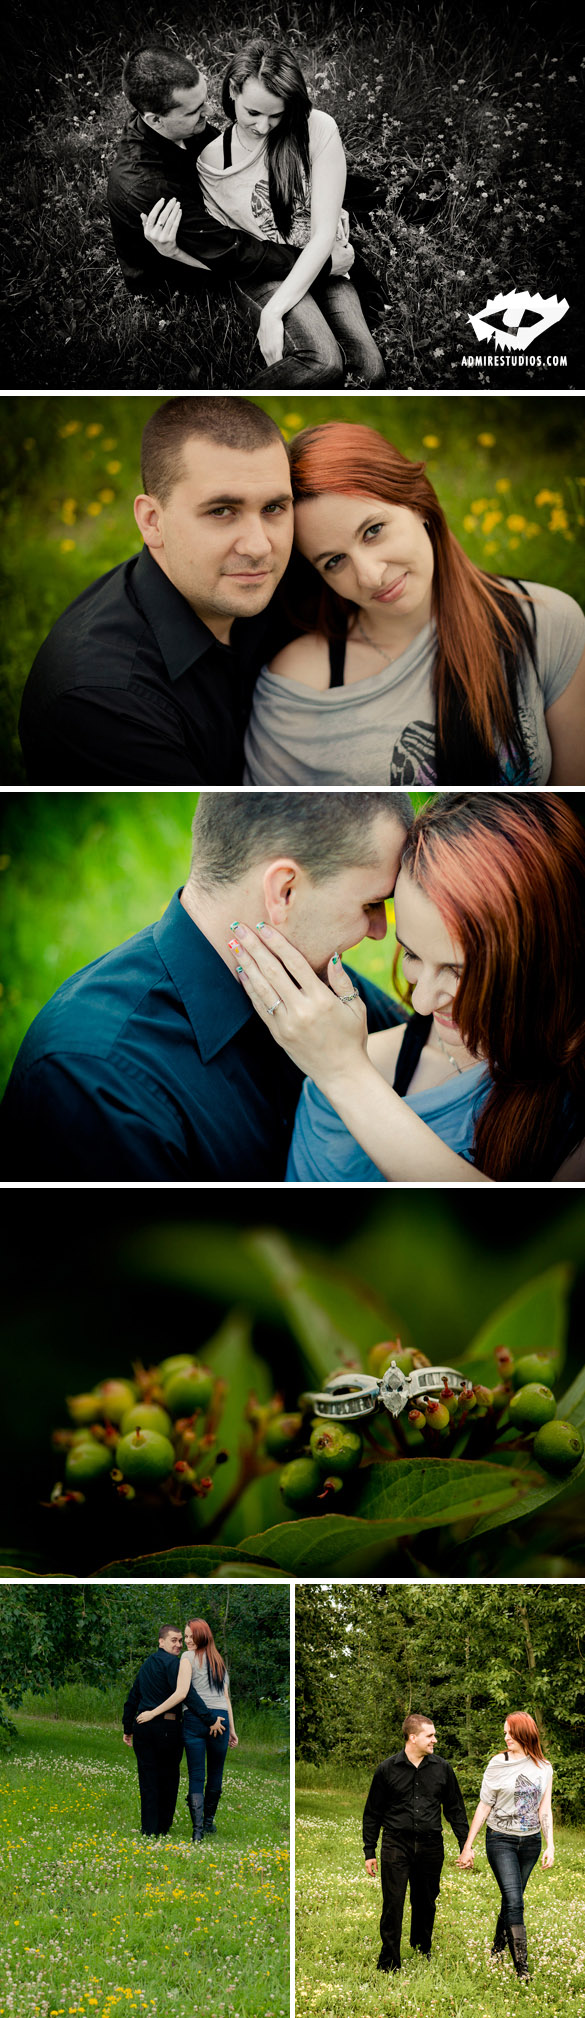 couples photography edmonton